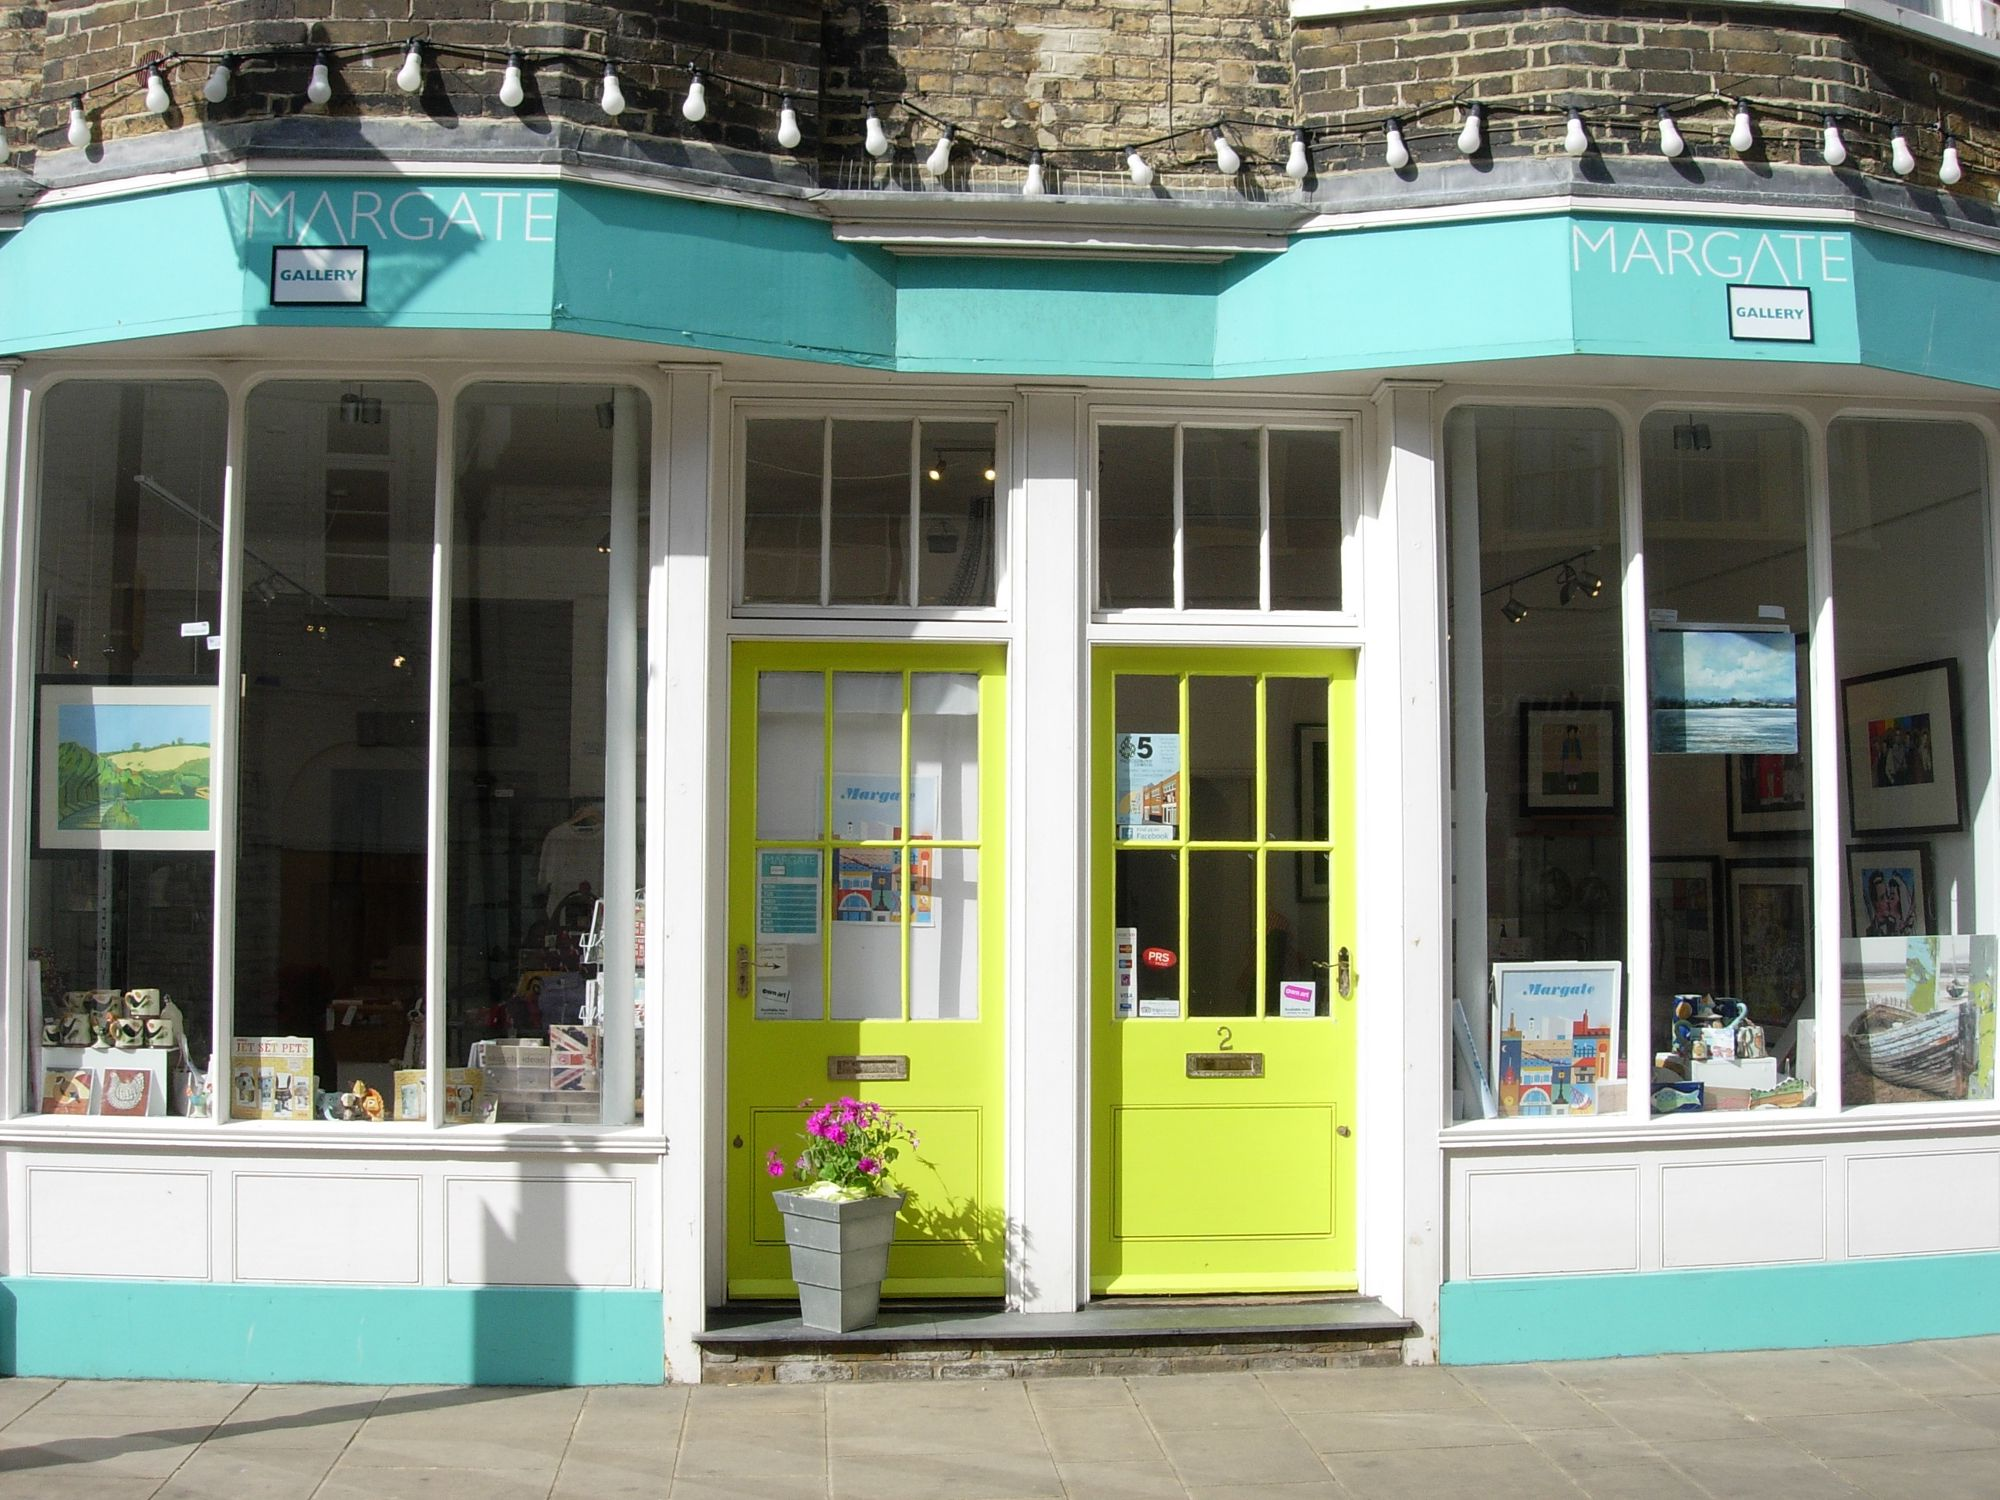 Margate Gallery Shop